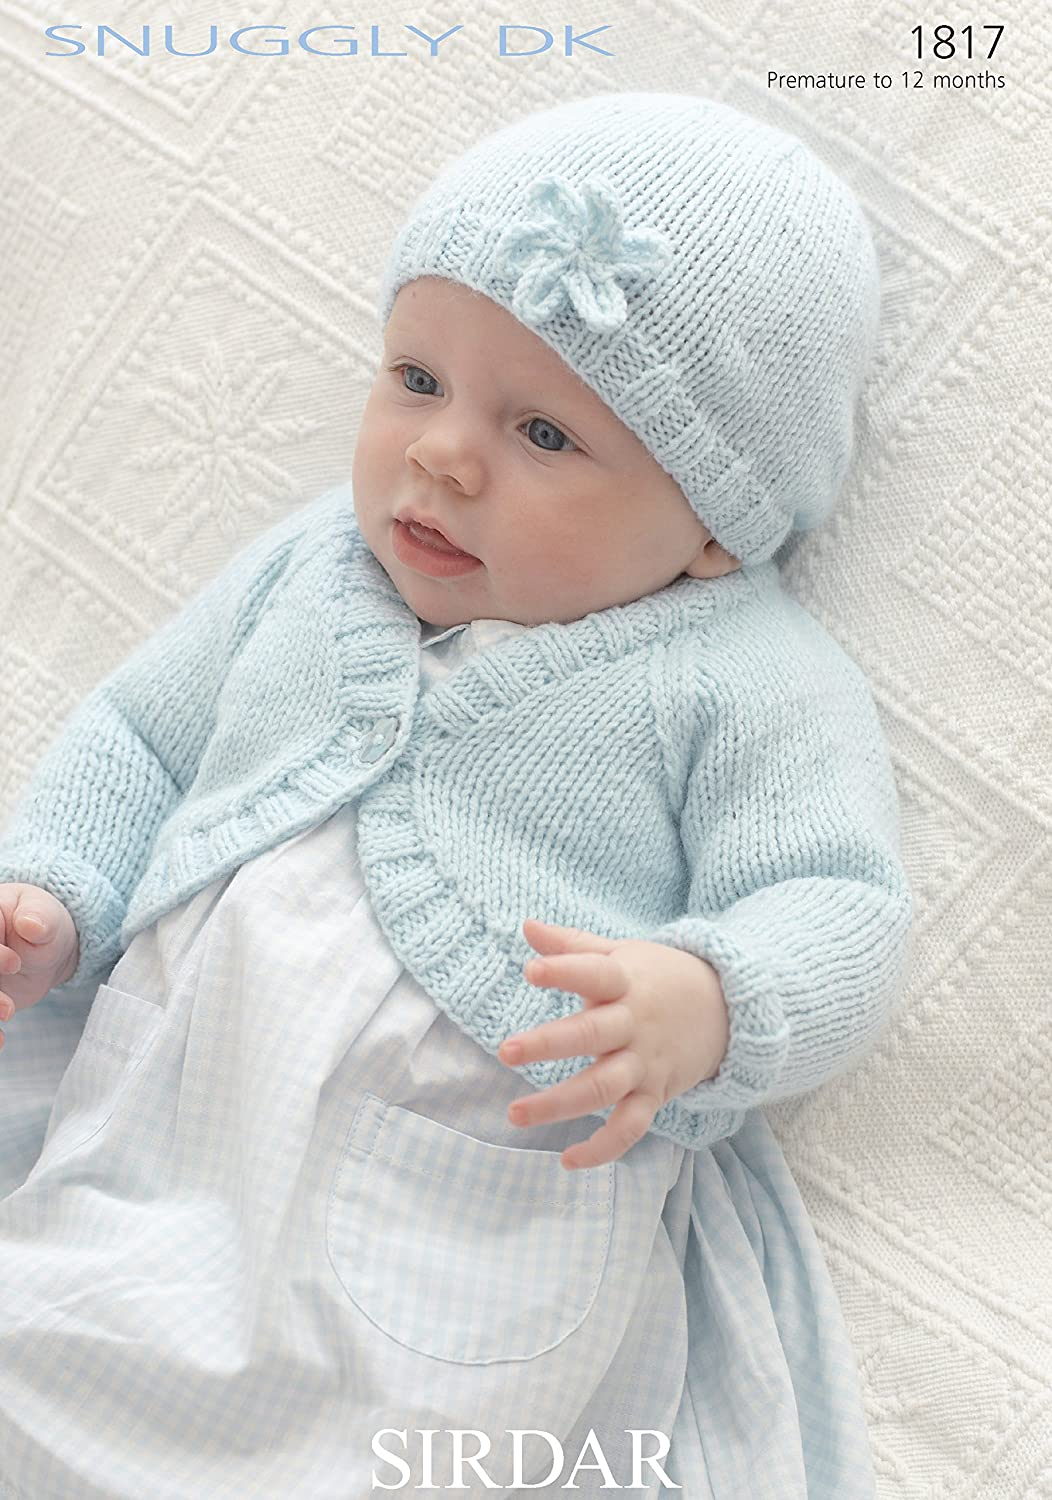 Sirdar 1817 Knitting Pattern Baby Bolero Cardigan and Hat to knit in ...